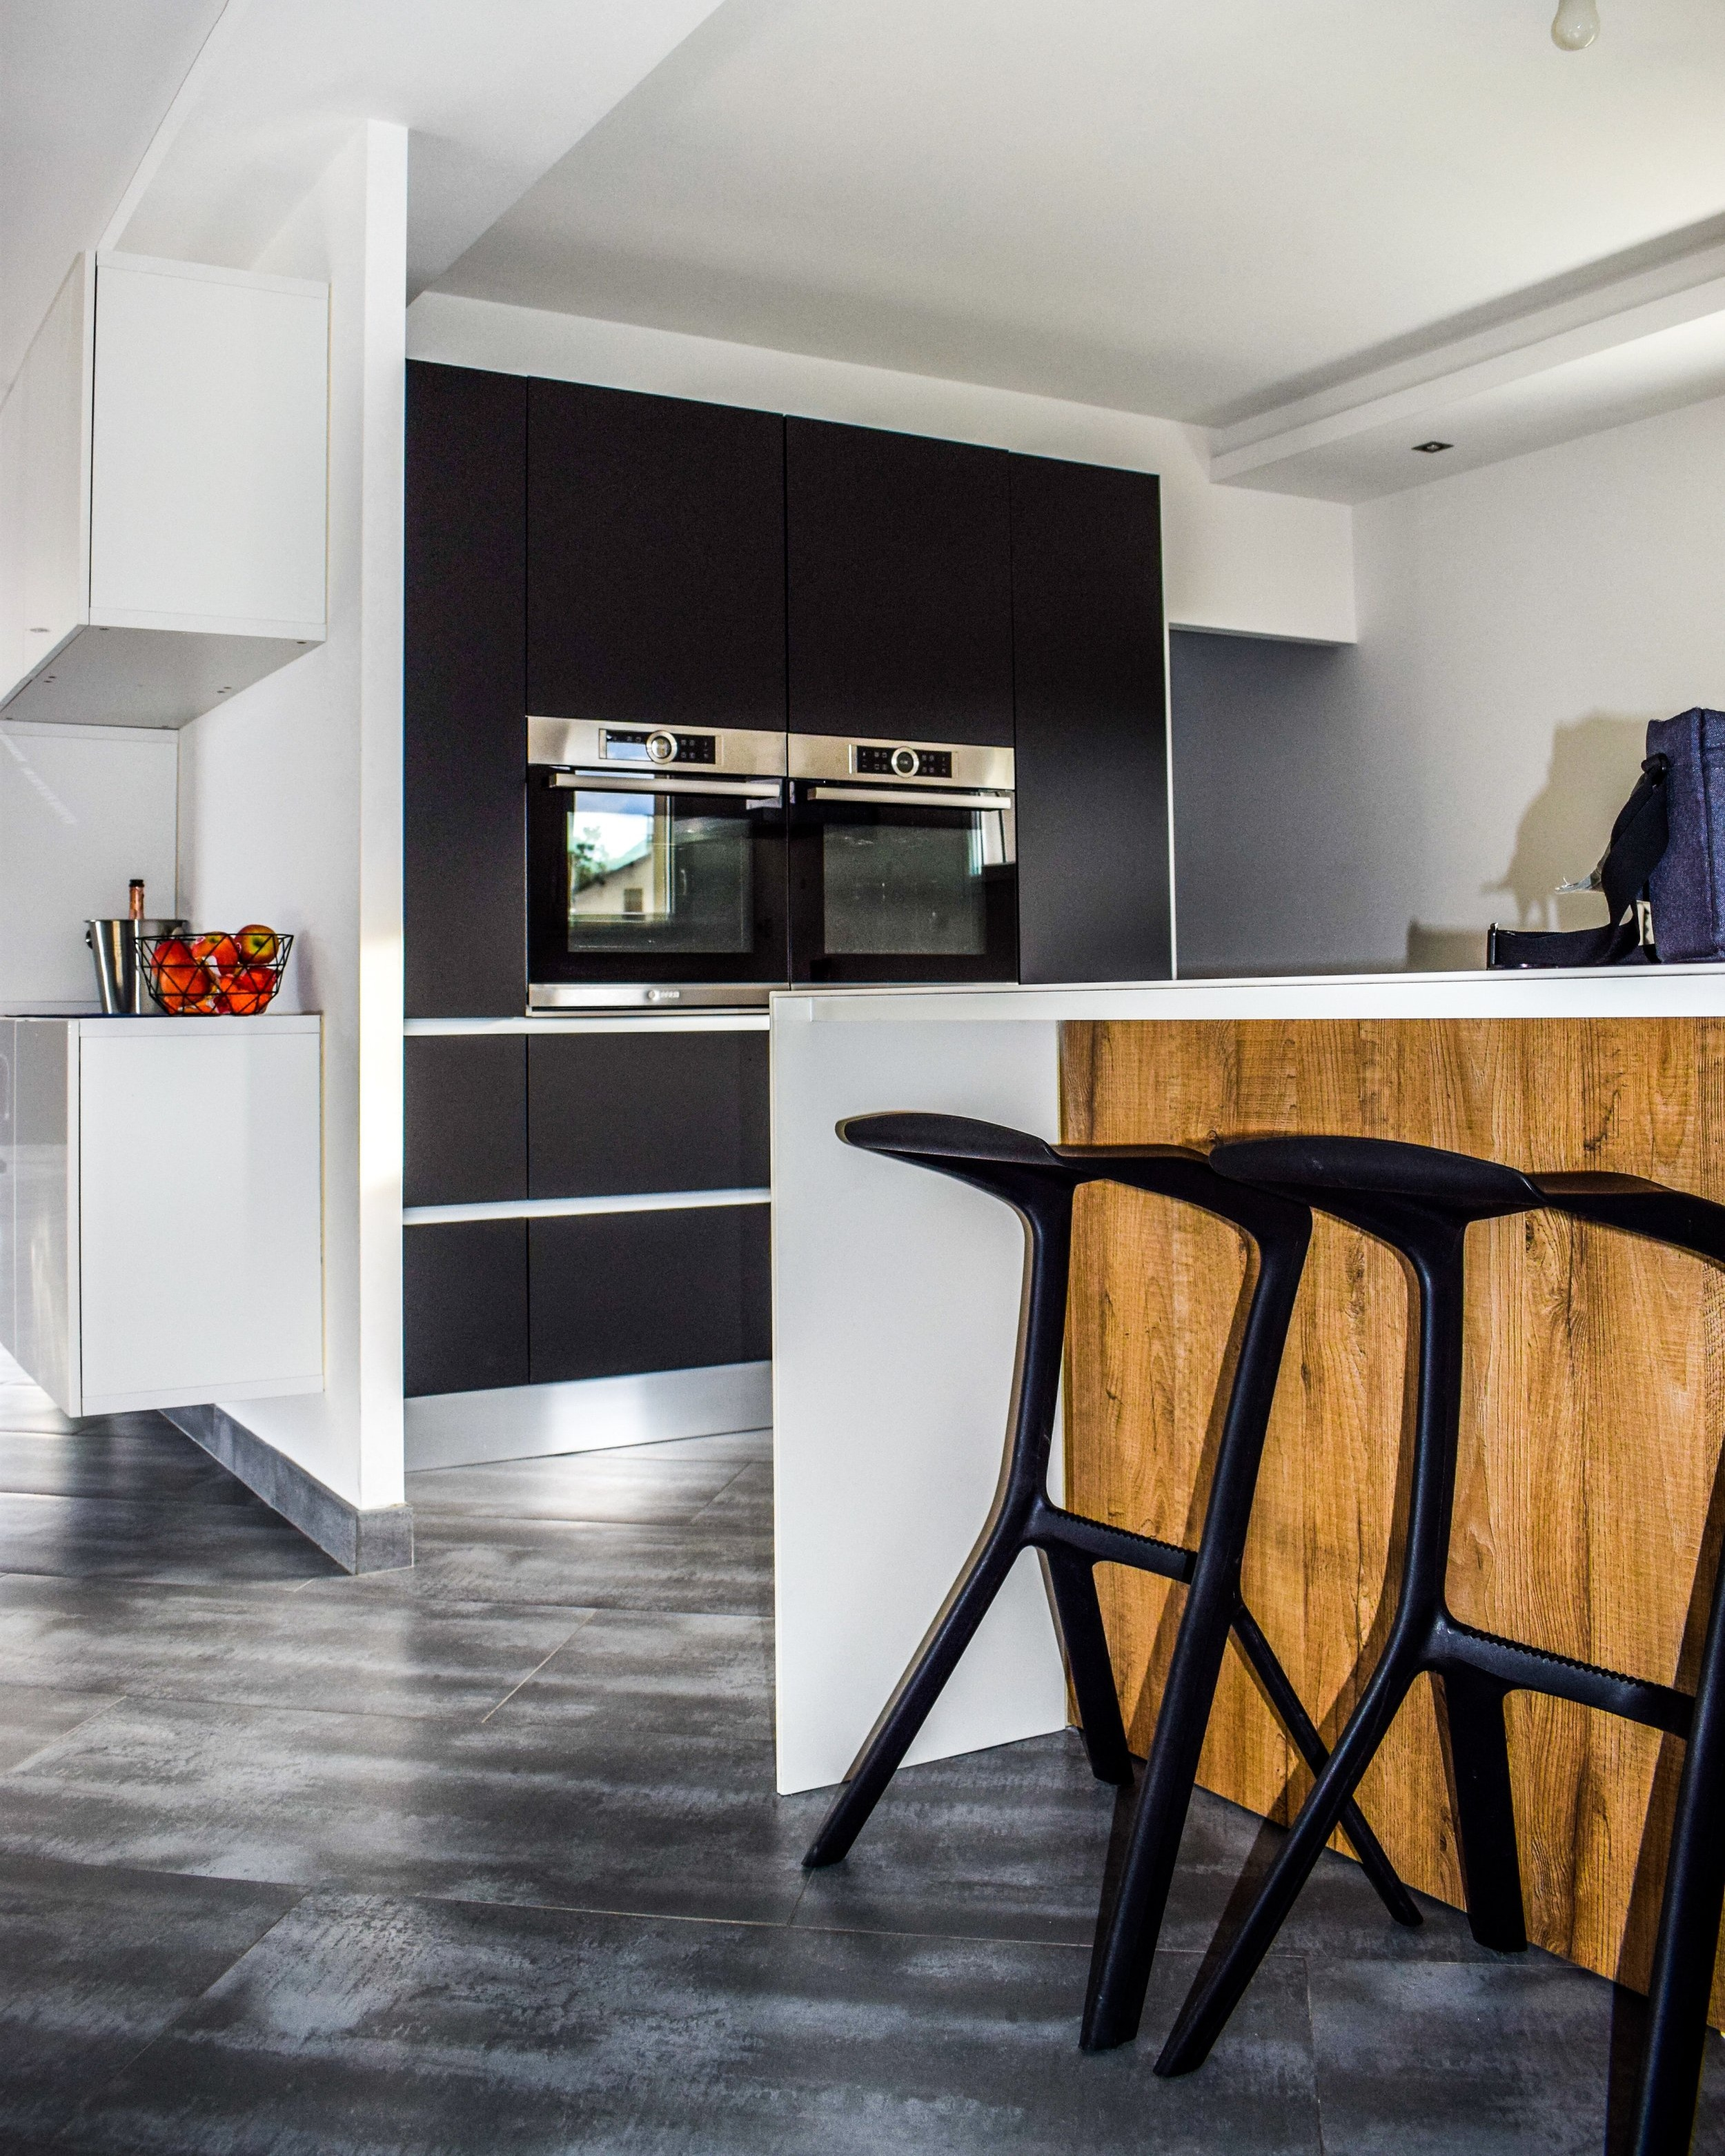 Top 5 New Modern Kitchen Ideas Streamline Cabinets Joinery